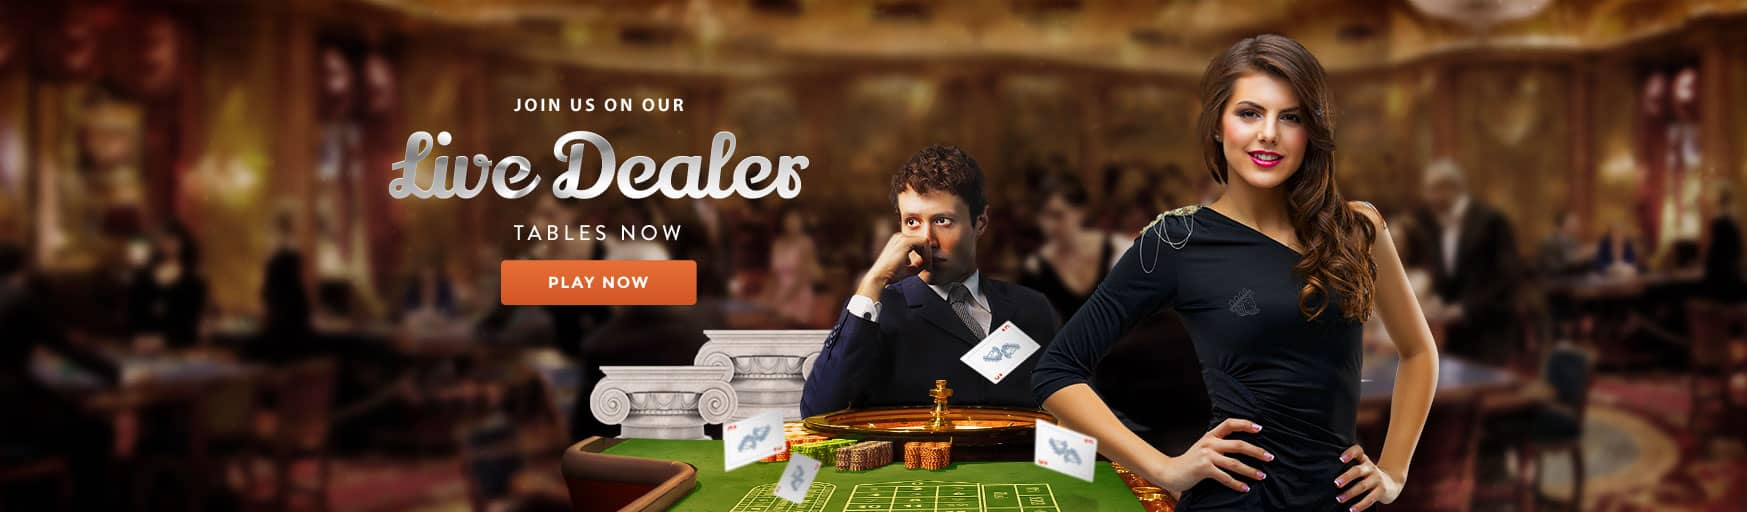 Fantastik casino avis : l'avis de nos experts sur ce casino